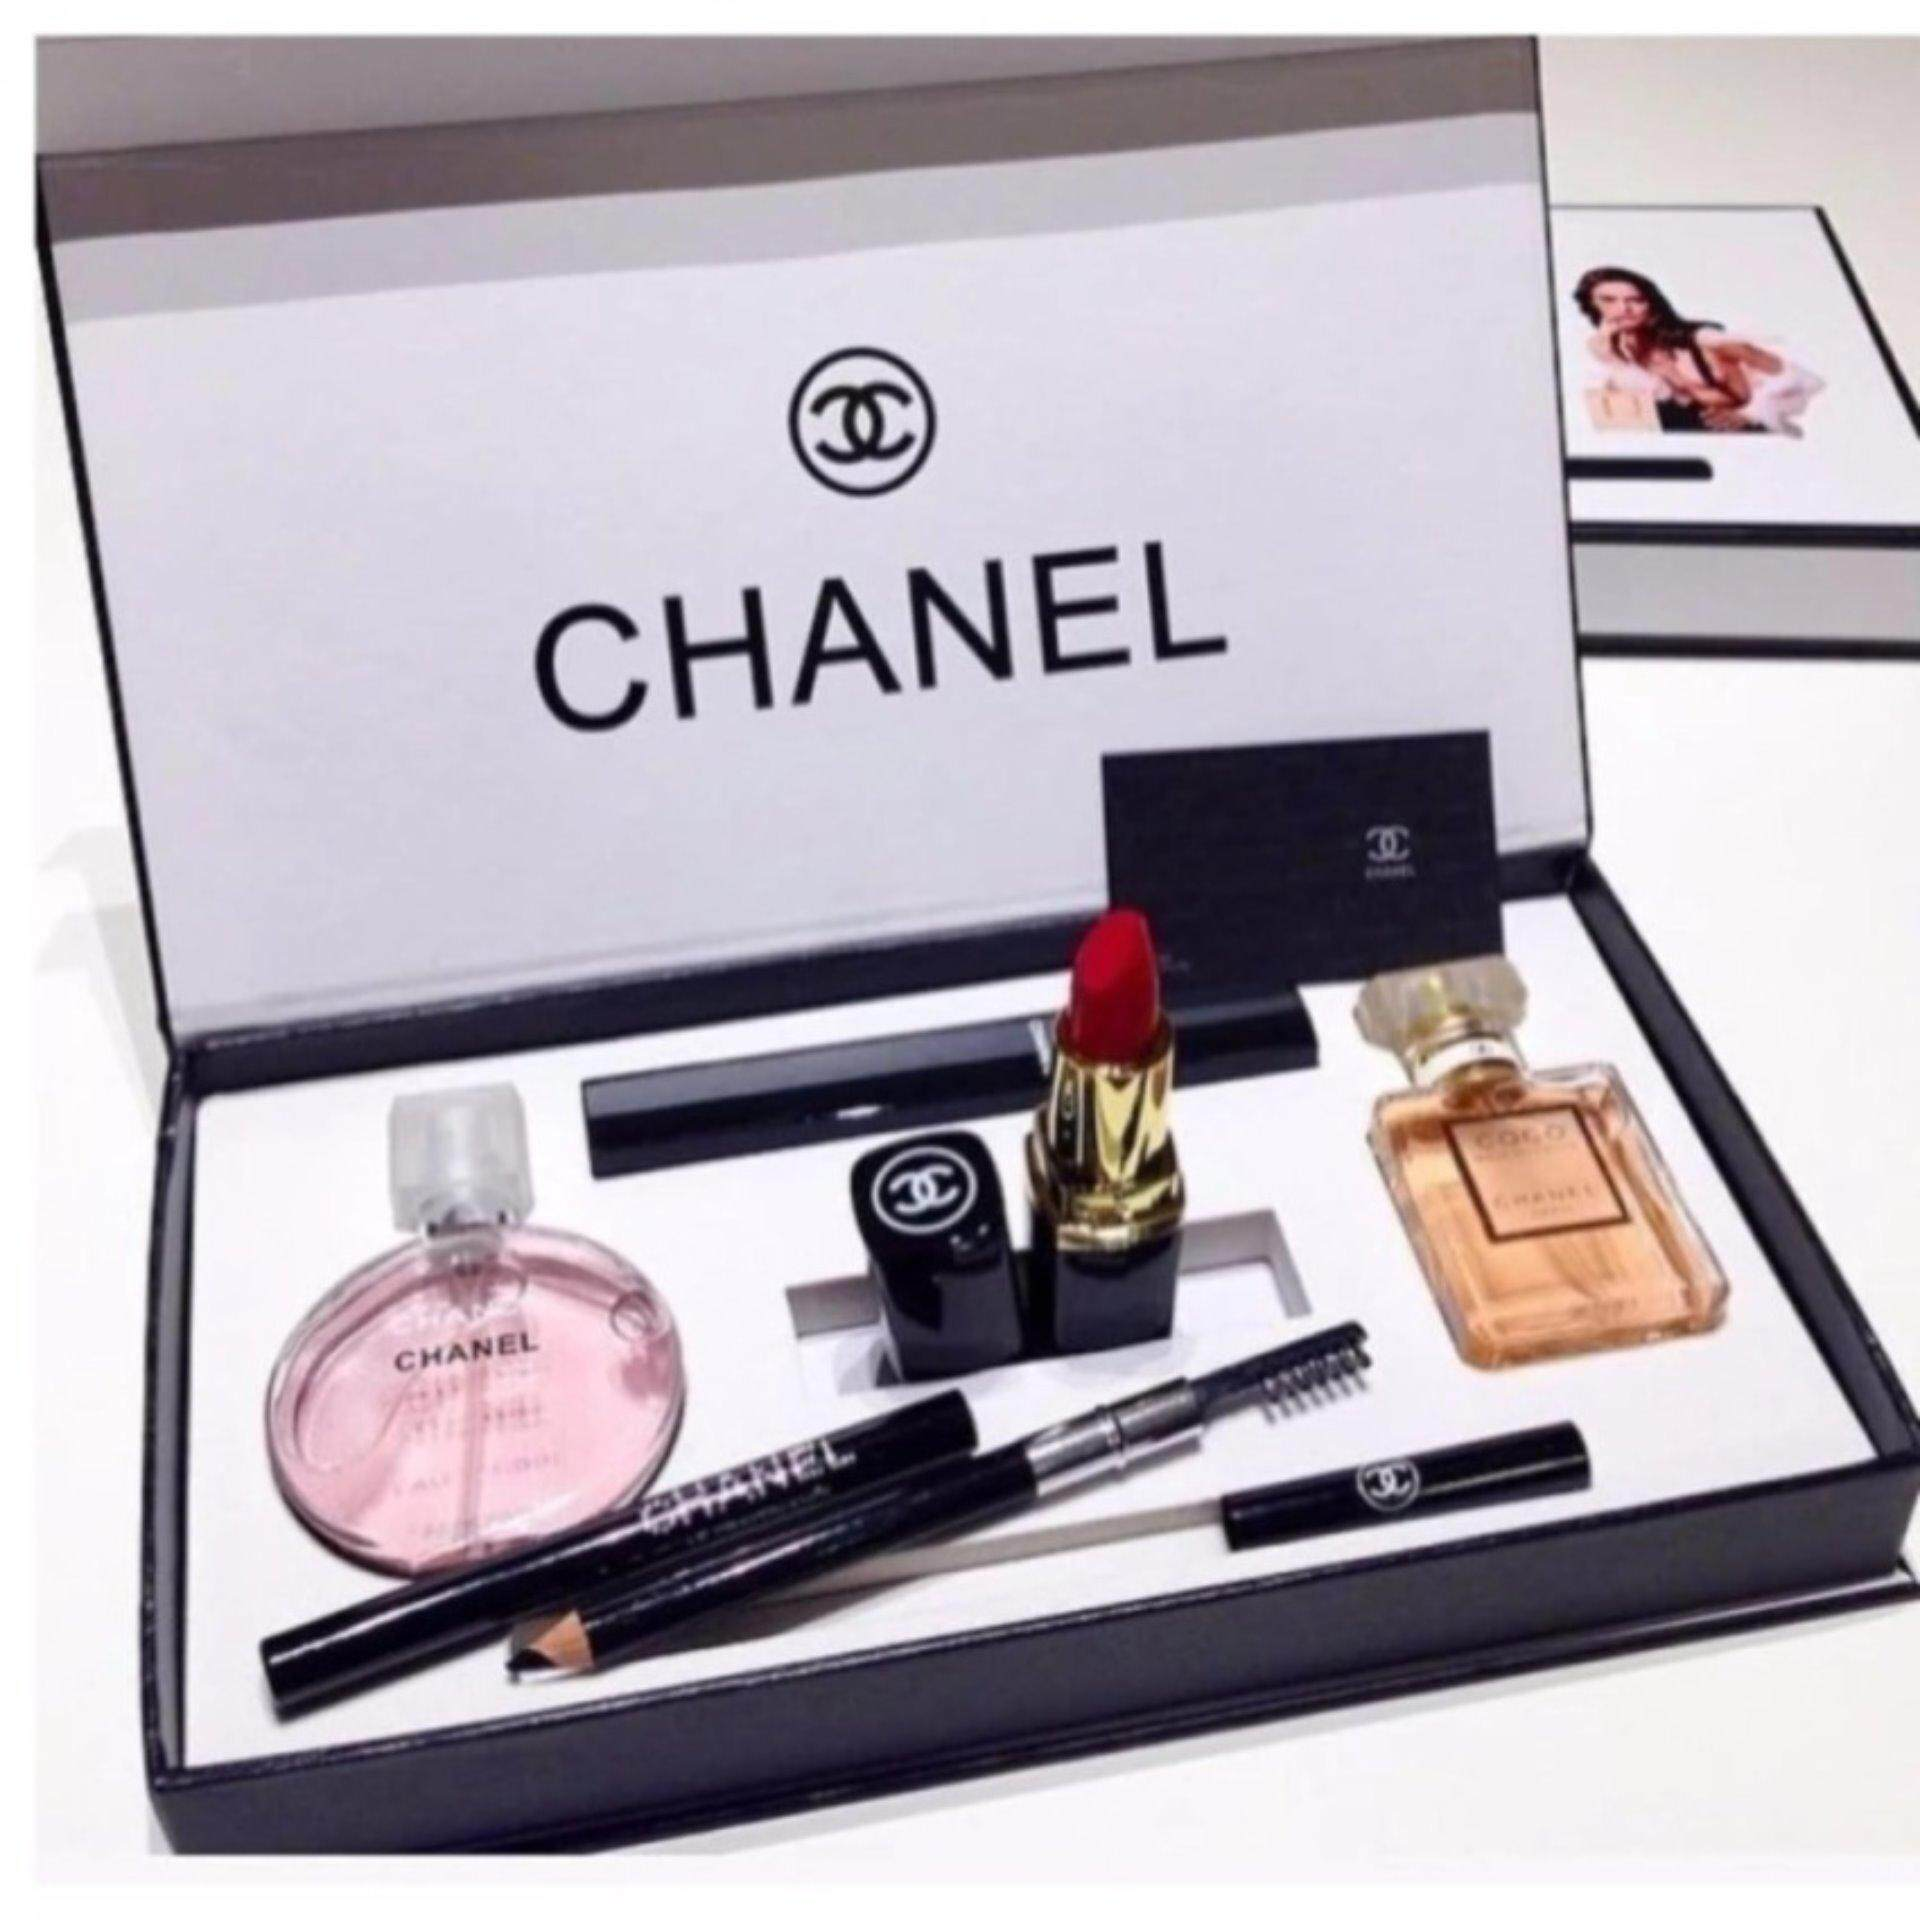 Chanel 5 in 1 Limited Edition Gift set- Chance Chanel 15ml Perfume ... e5db3b88e